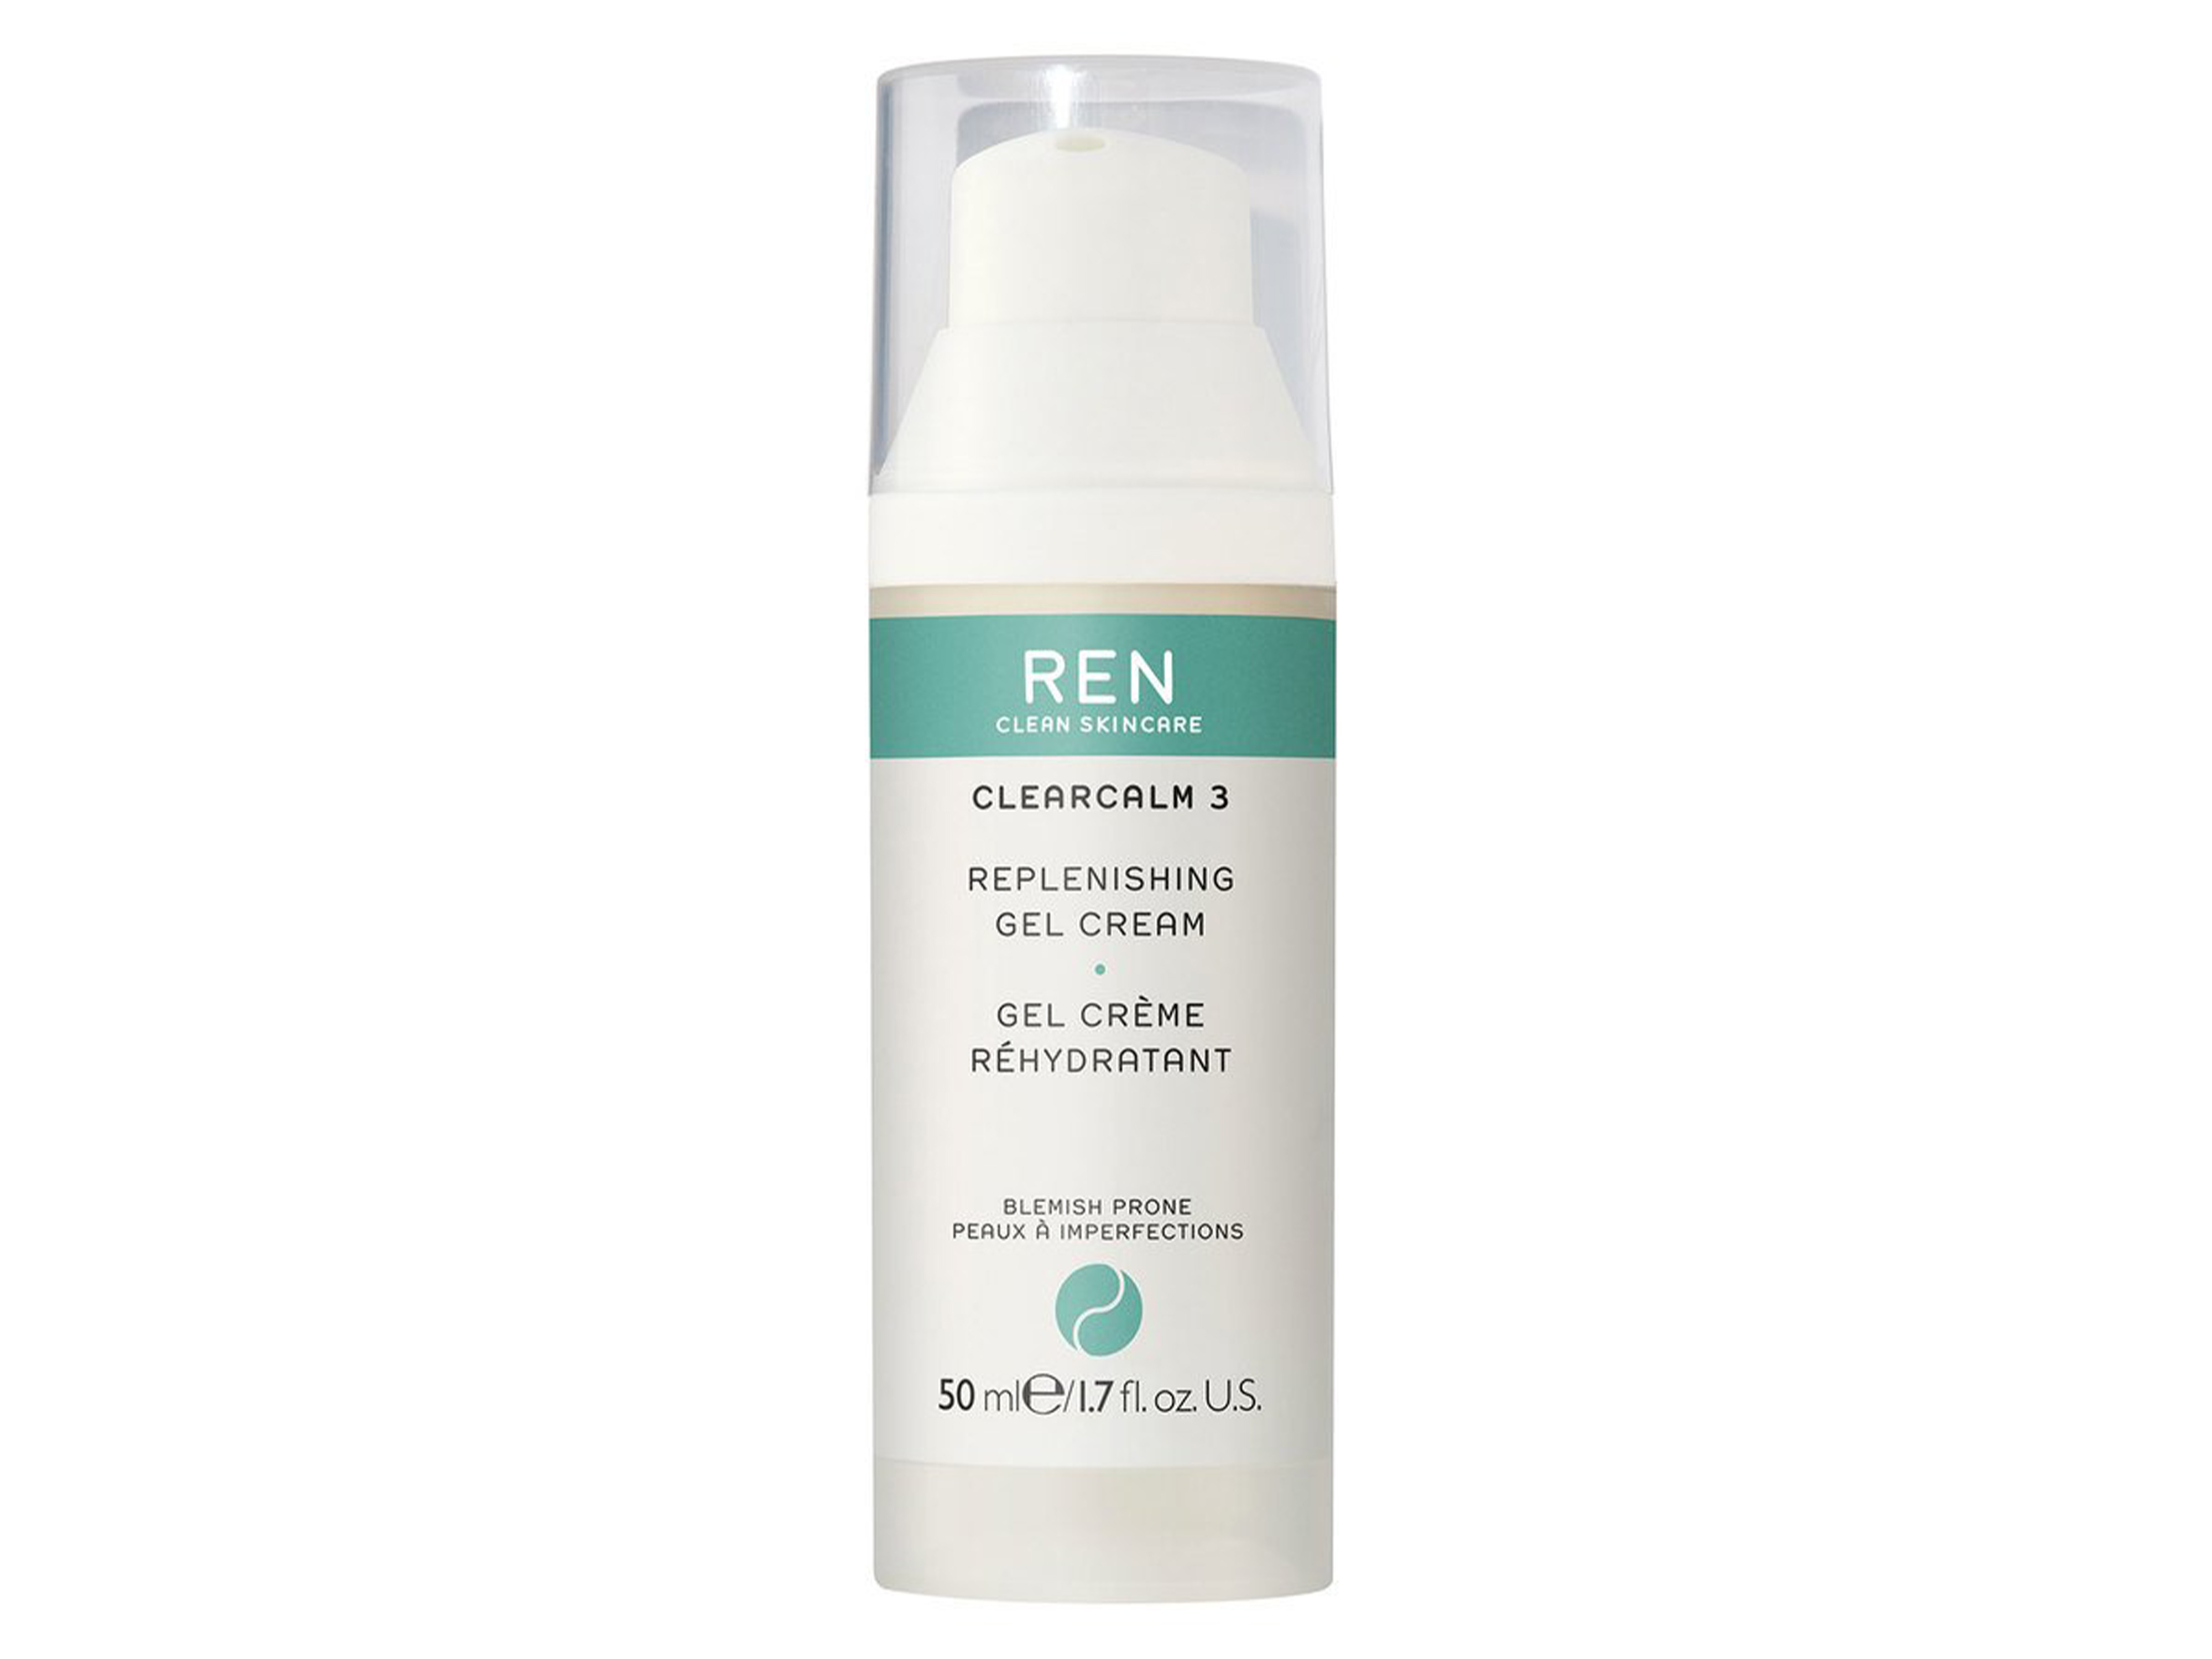 REN Clearcalm 3 Replenishing Gel Cream, 50 ml